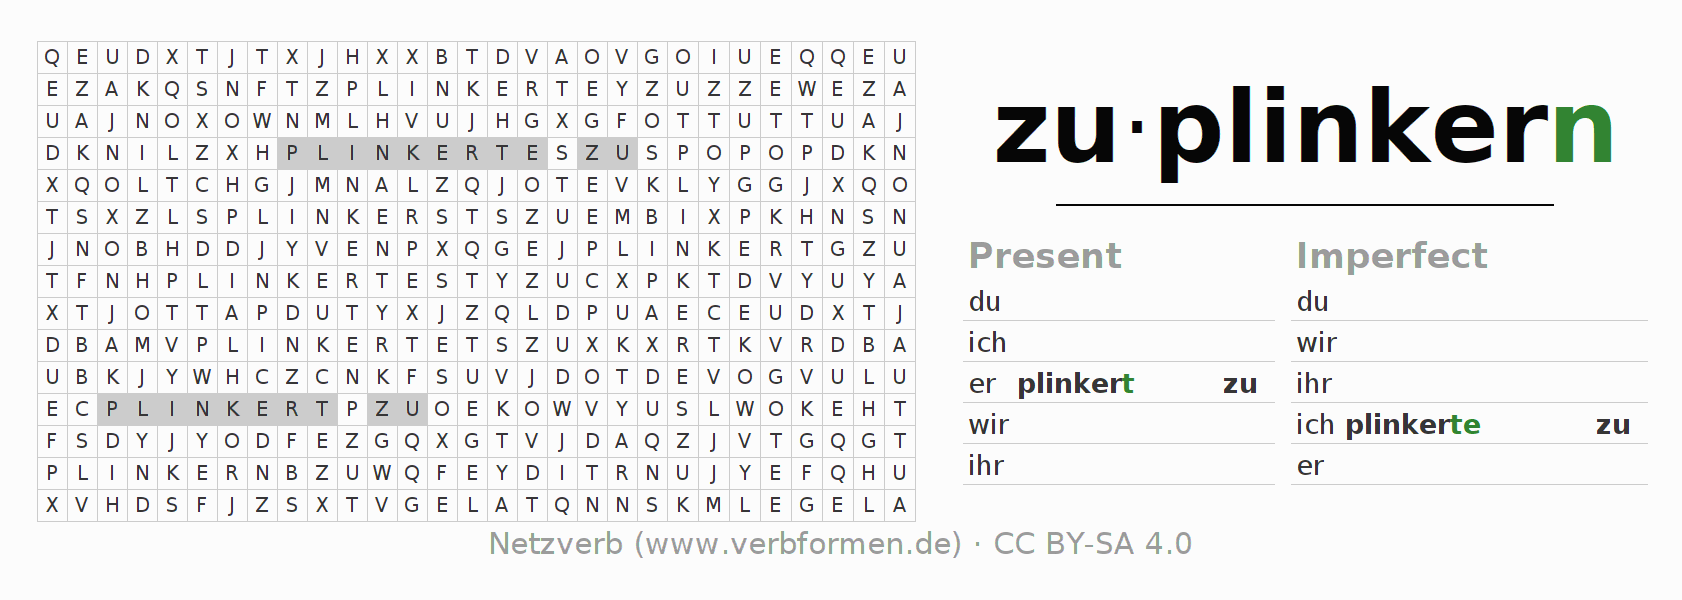 Word search puzzle for the conjugation of the verb zuplinkern